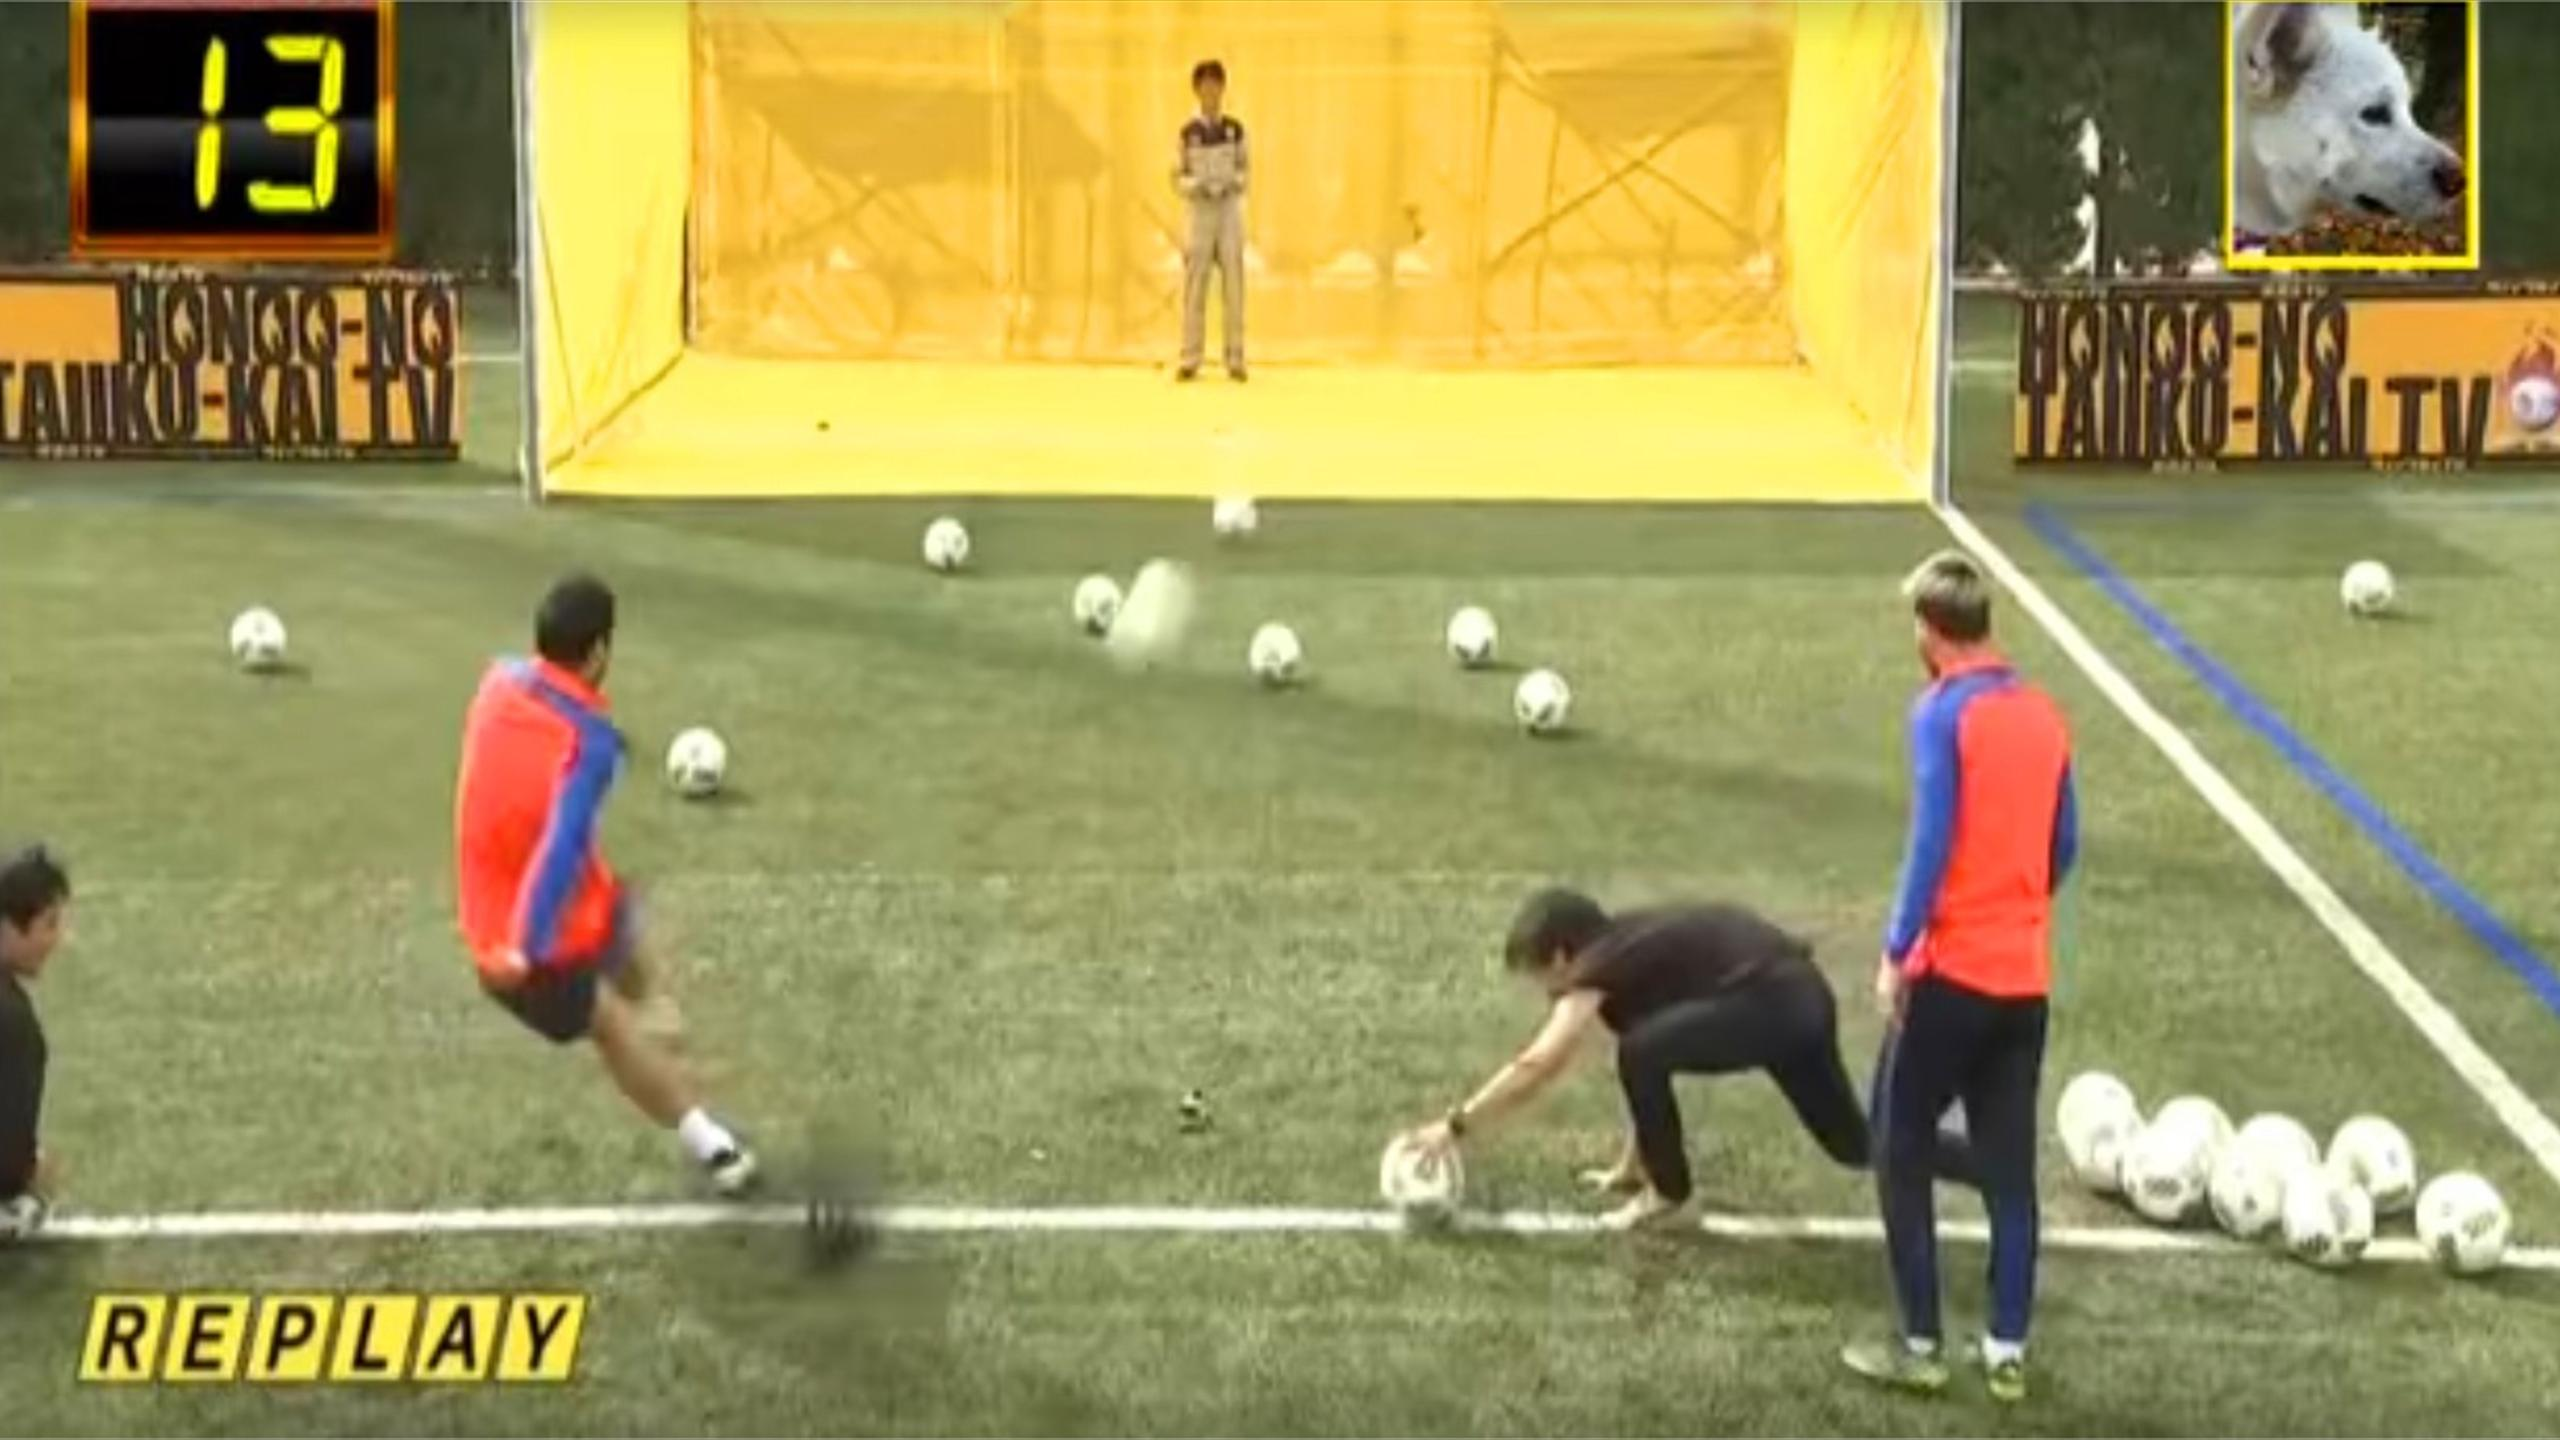 Lionel Messi and Luis Suarez take on a drone in very bizarre Japanese TV show (Youtube)